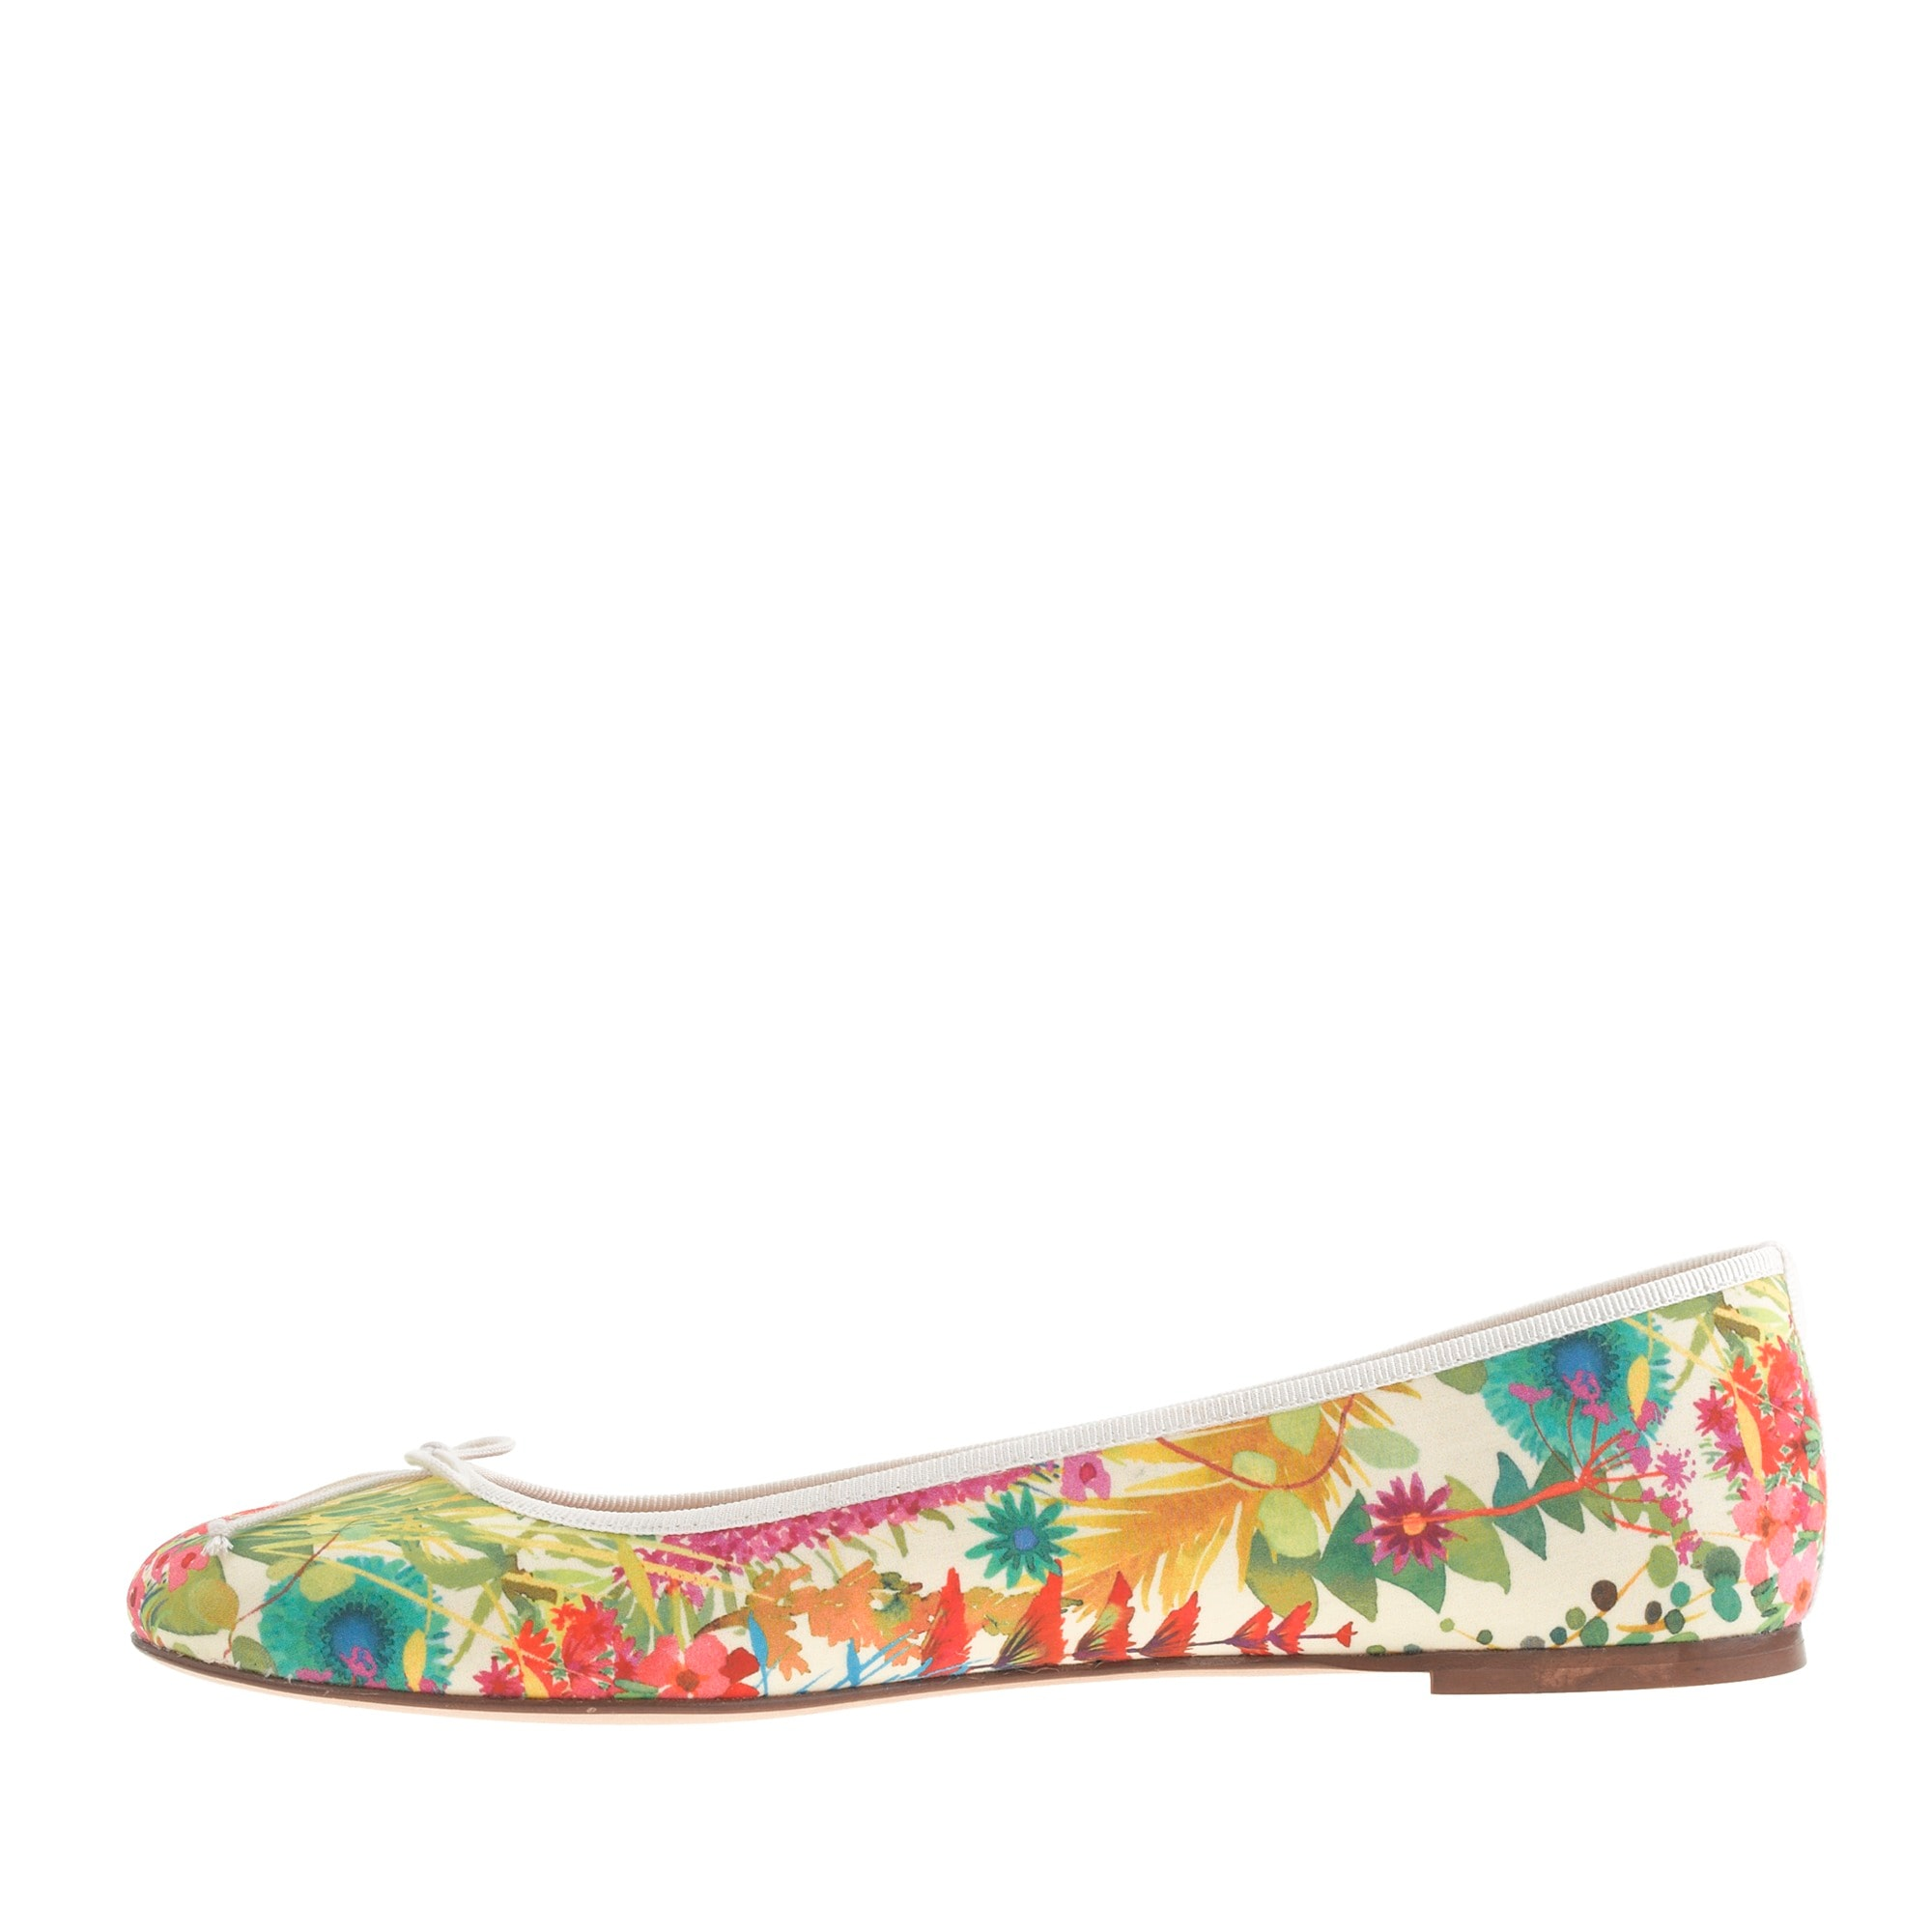 Image 2 for Collection classic Liberty floral ballet flats